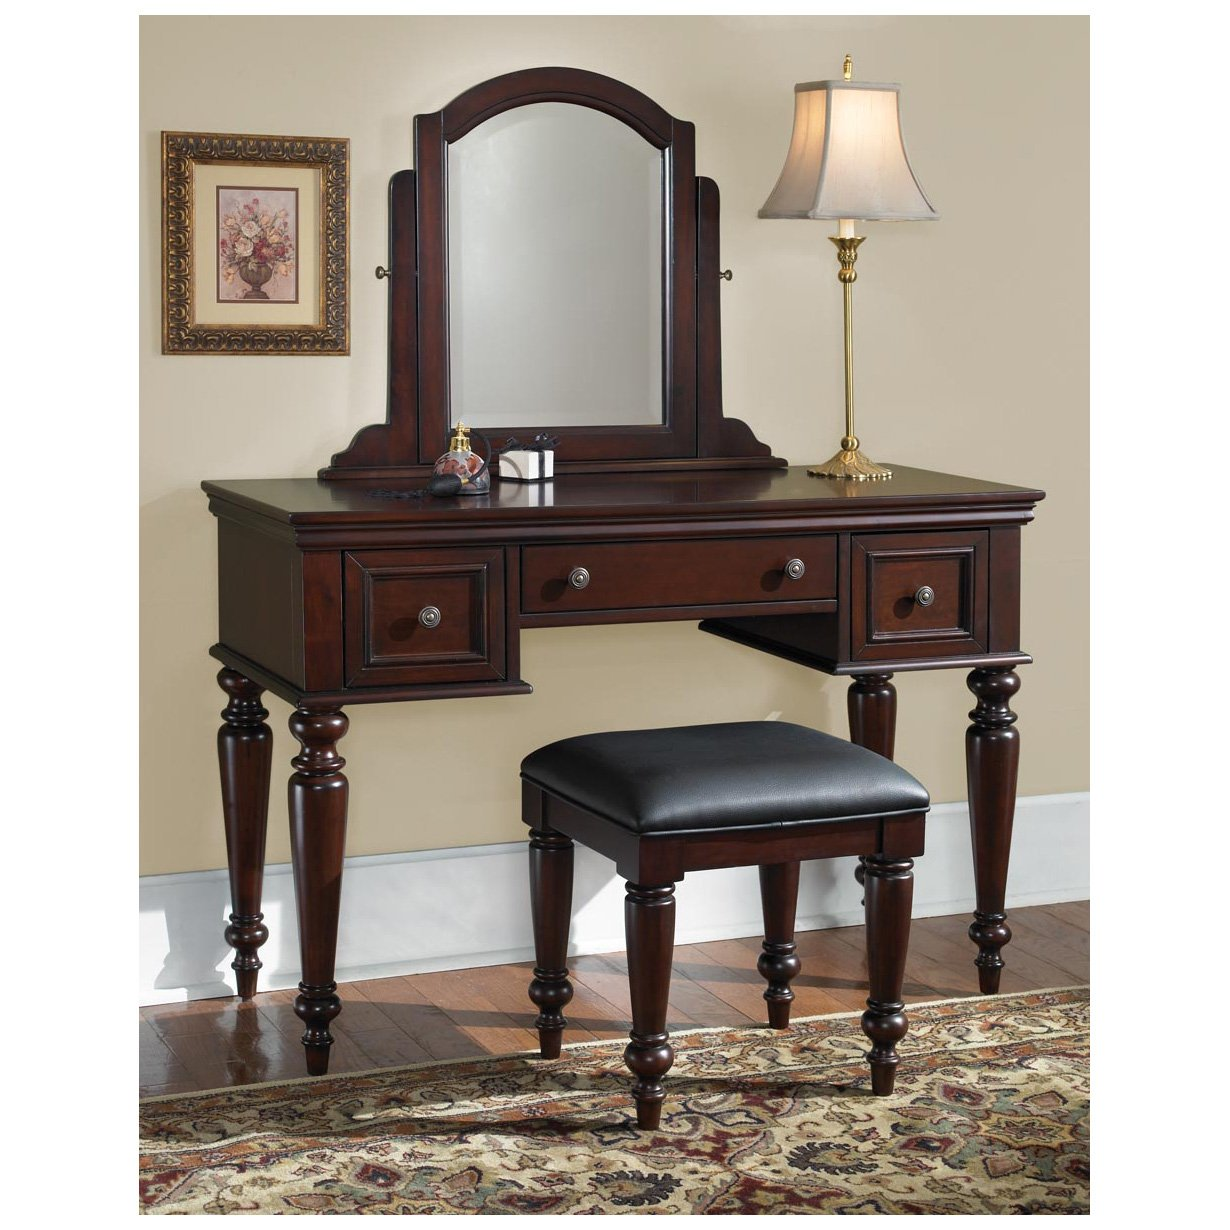 Amazon.com: Home Styles 5537-72 Lafayette Vanity Table and Bench ...